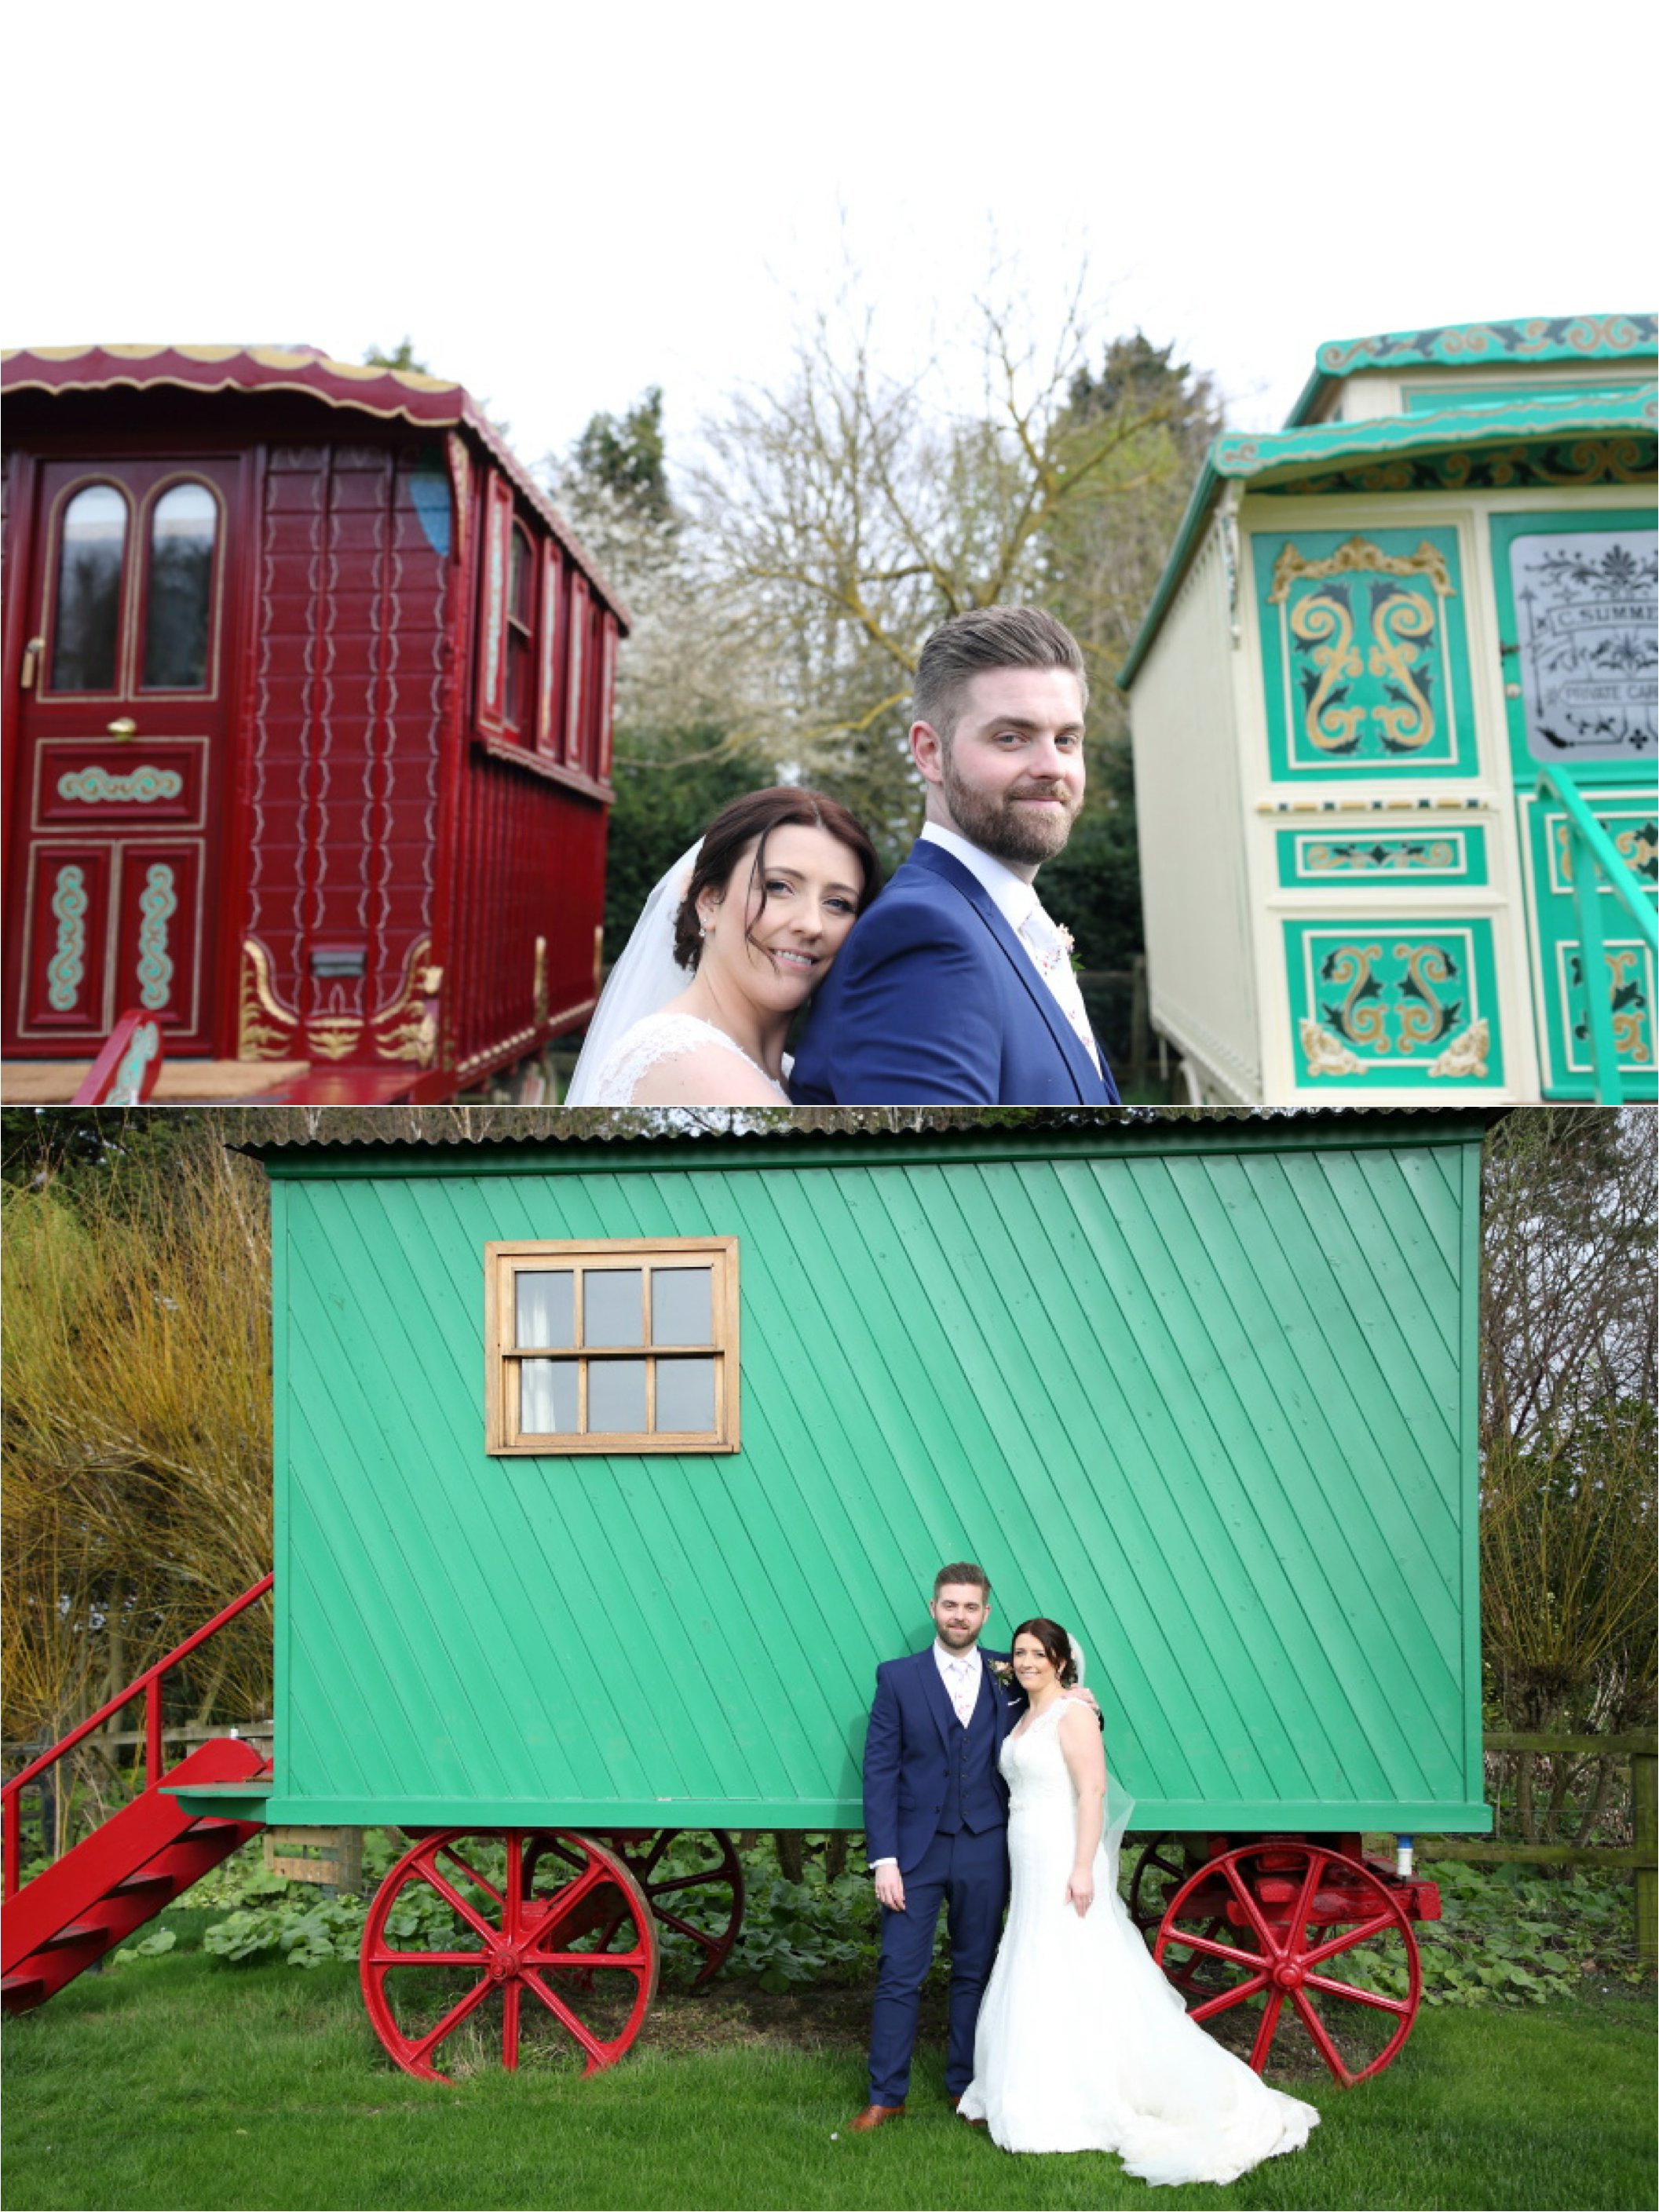 south farm wedding photography colourful gypsy caravans